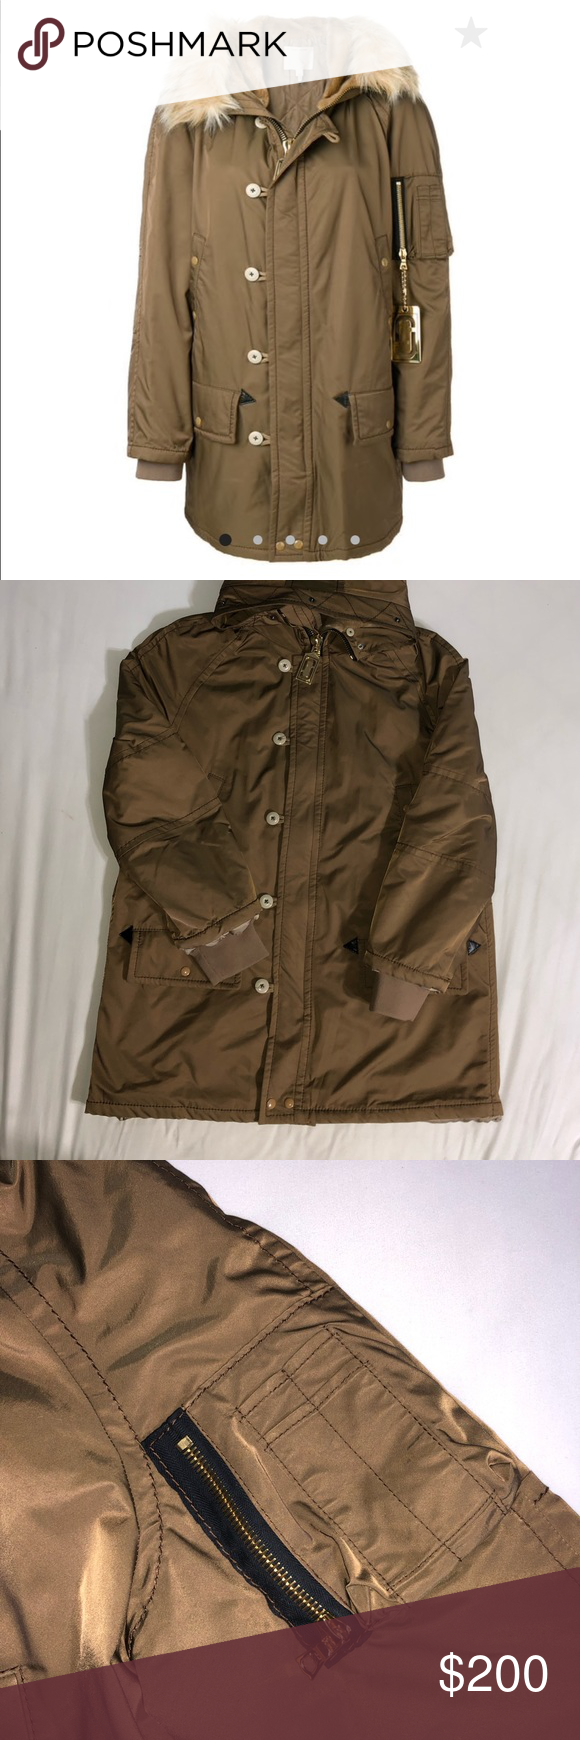 """4fc3fbefaf77 Marc Jacobs Snorkel Coat Marc Jacobs Snorkel Coat Great condition """"Perfect  for those erratic weather"""